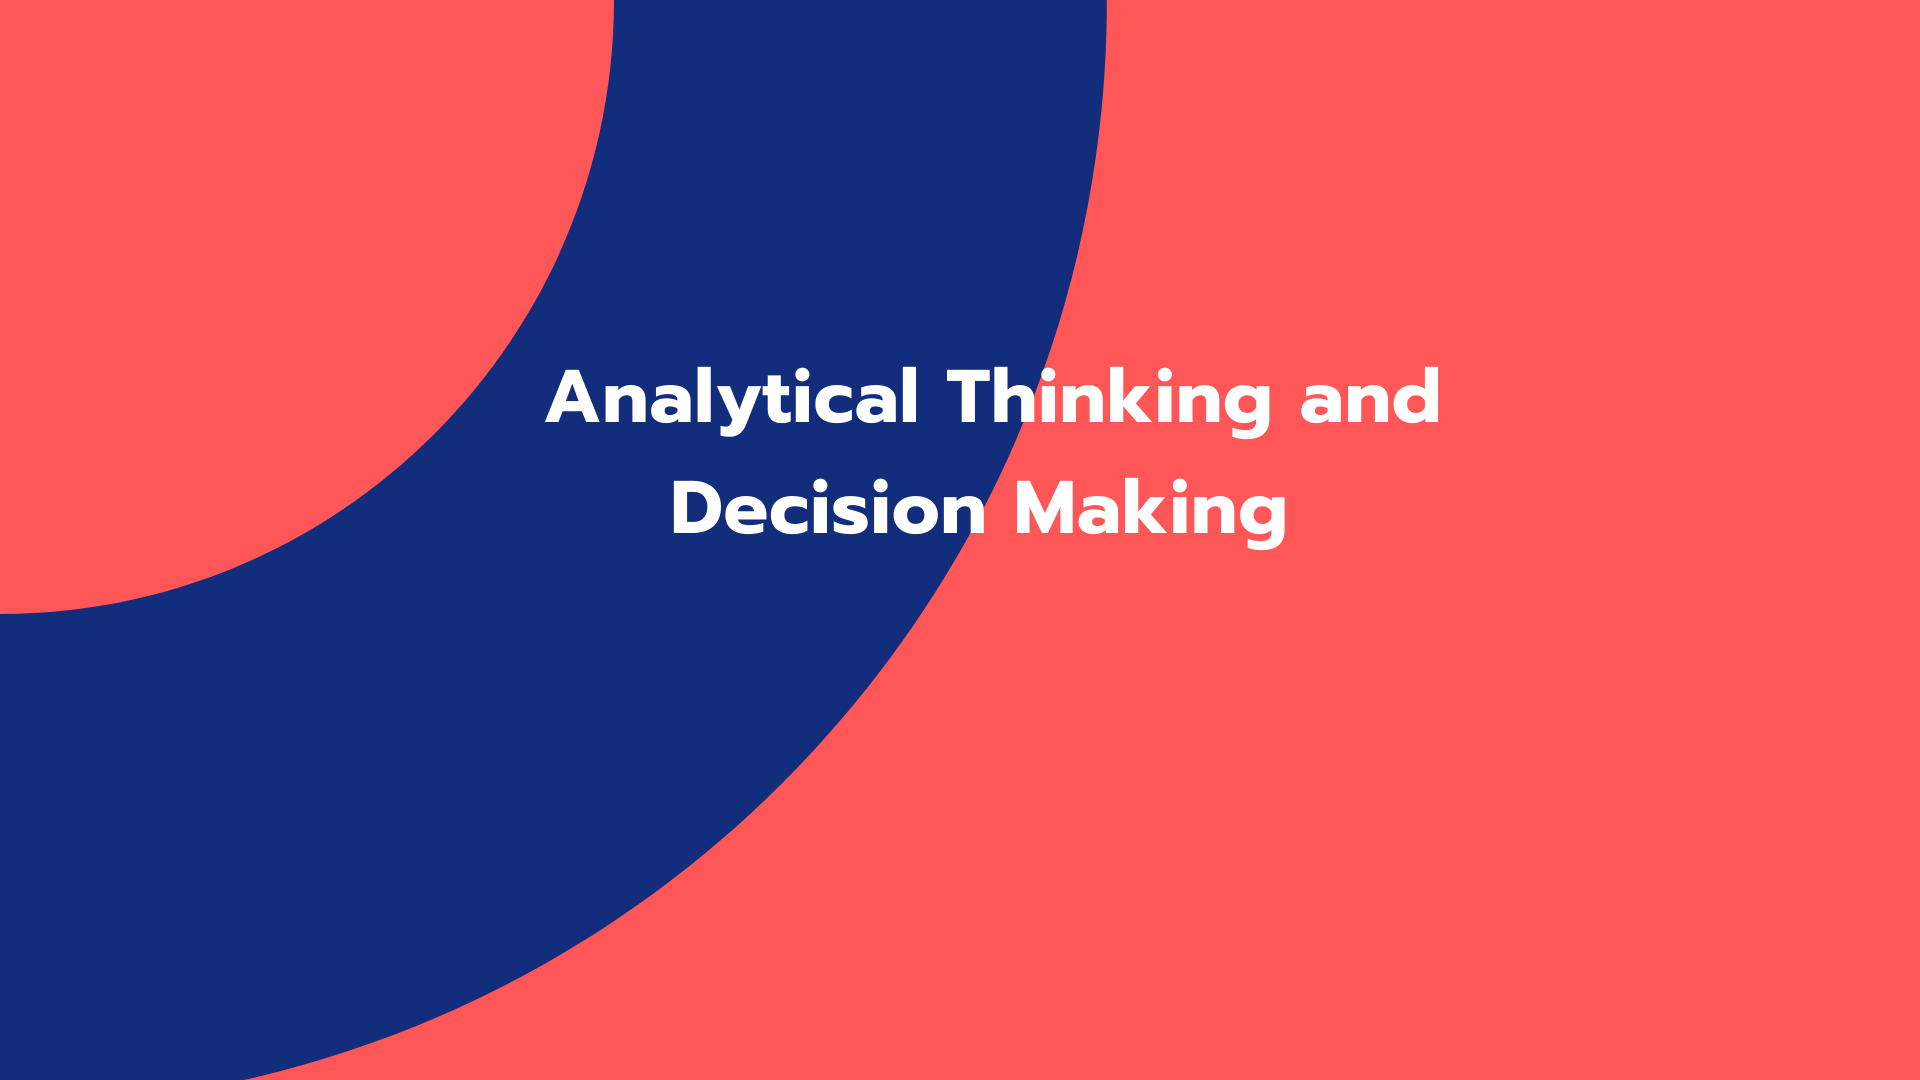 Analytical Thinking and Decision Making